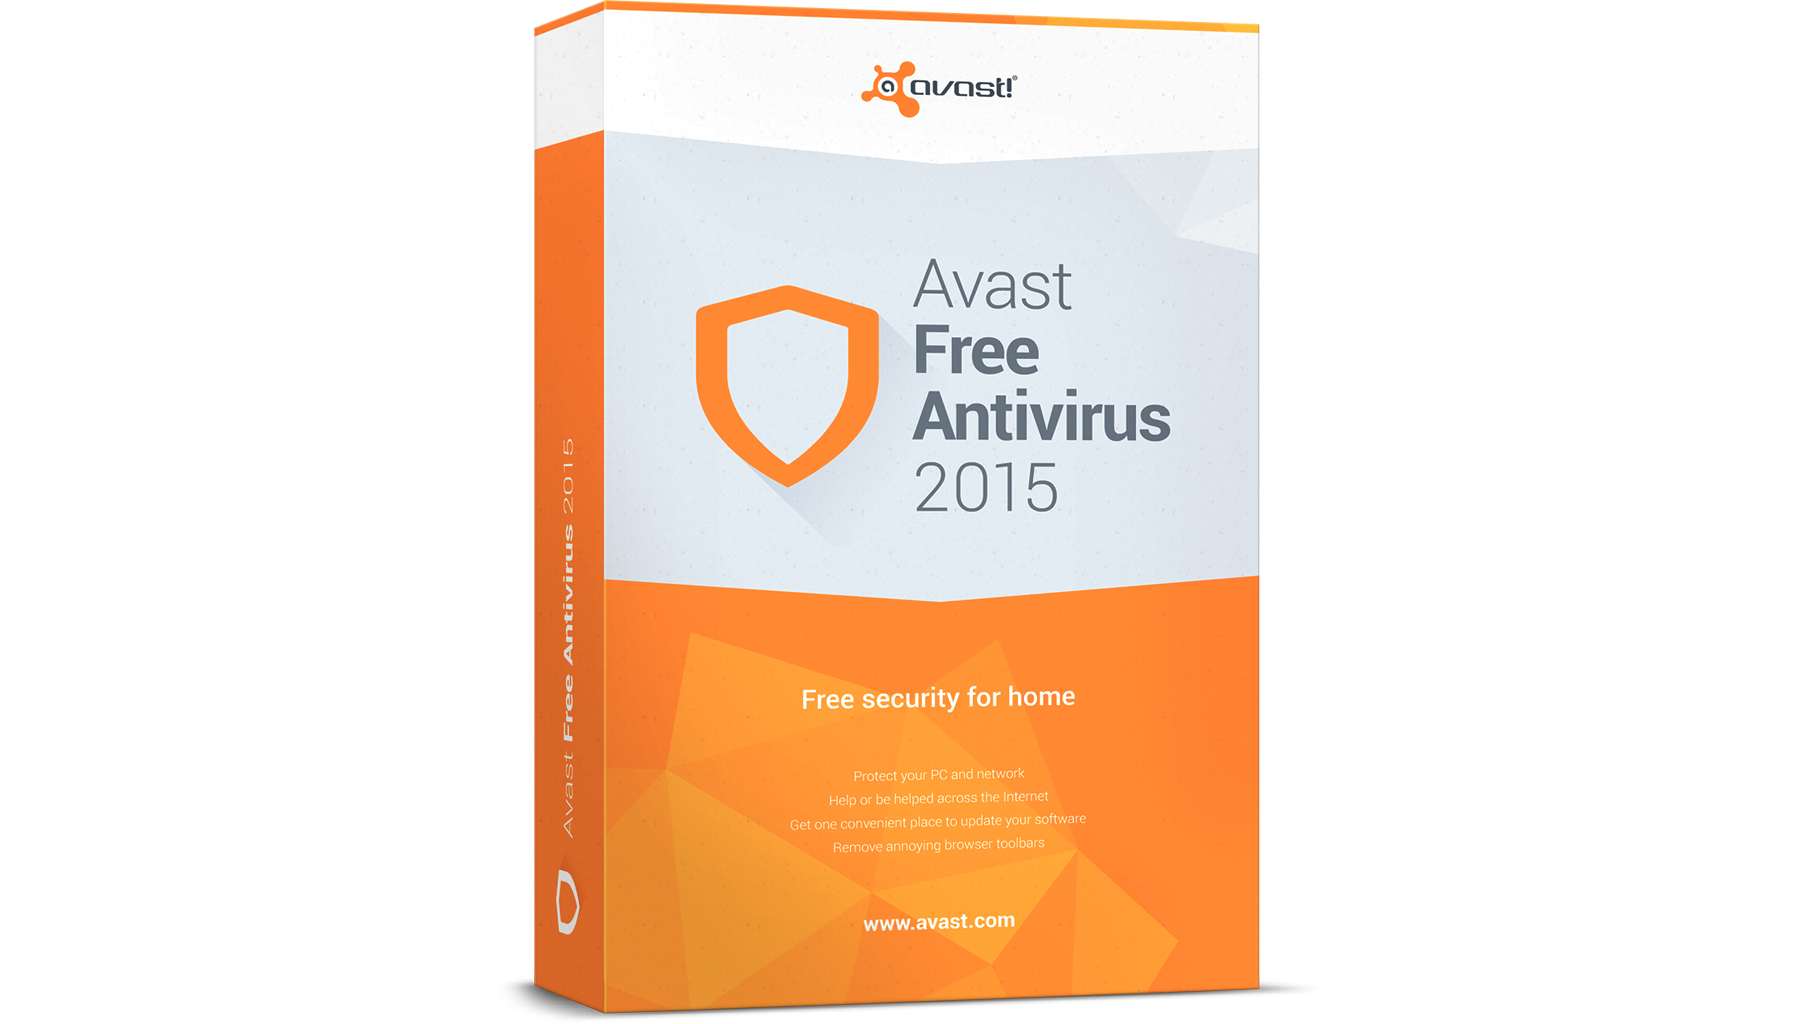 Perfectly remove avast free antivirus 2015 how to do it - Perfectly Remove Avast Free Antivirus 2015 How To Do It 24